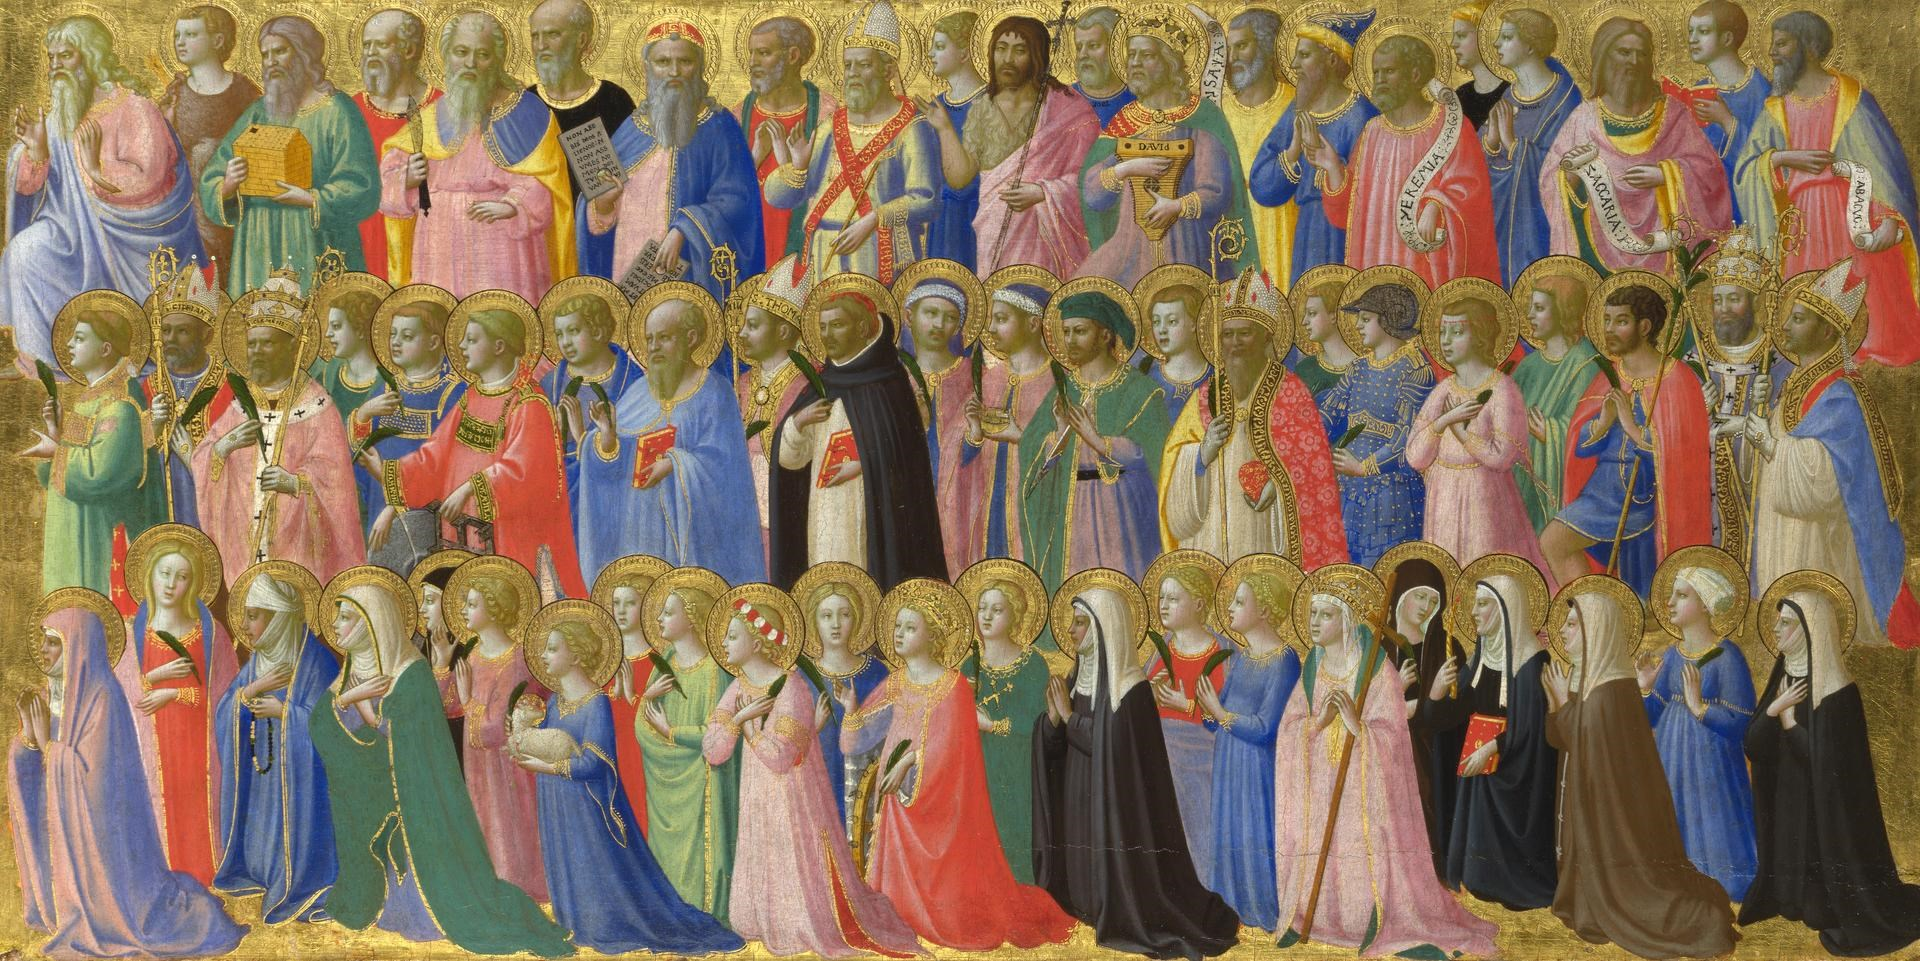 The Forerunners of Christ with Saints and Martyrs by Probably by Fra Angelico